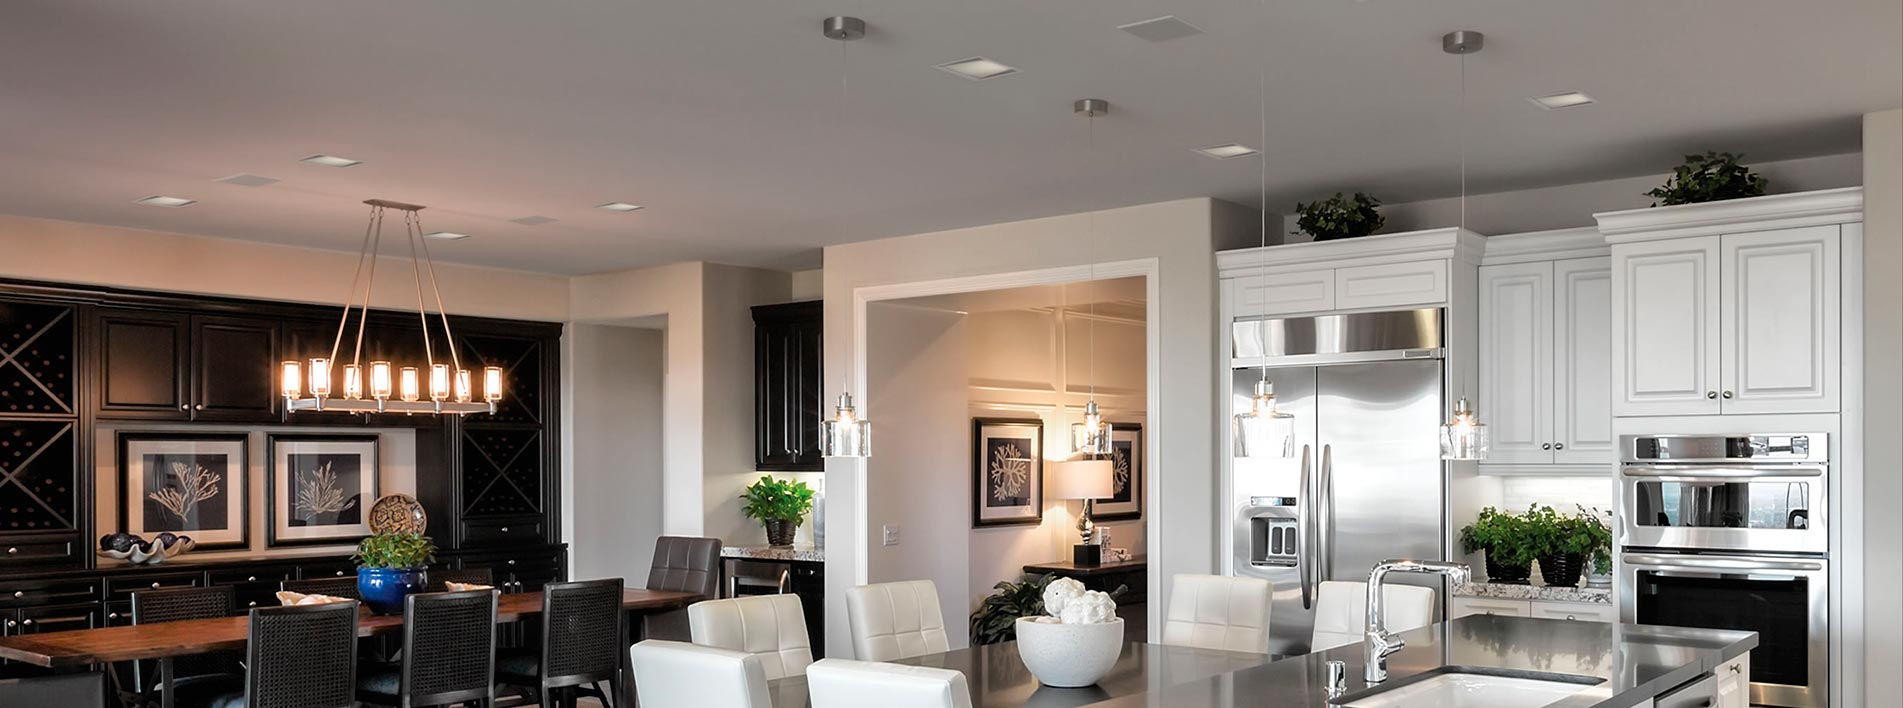 In-Wall_In-Ceiling_Pic_1